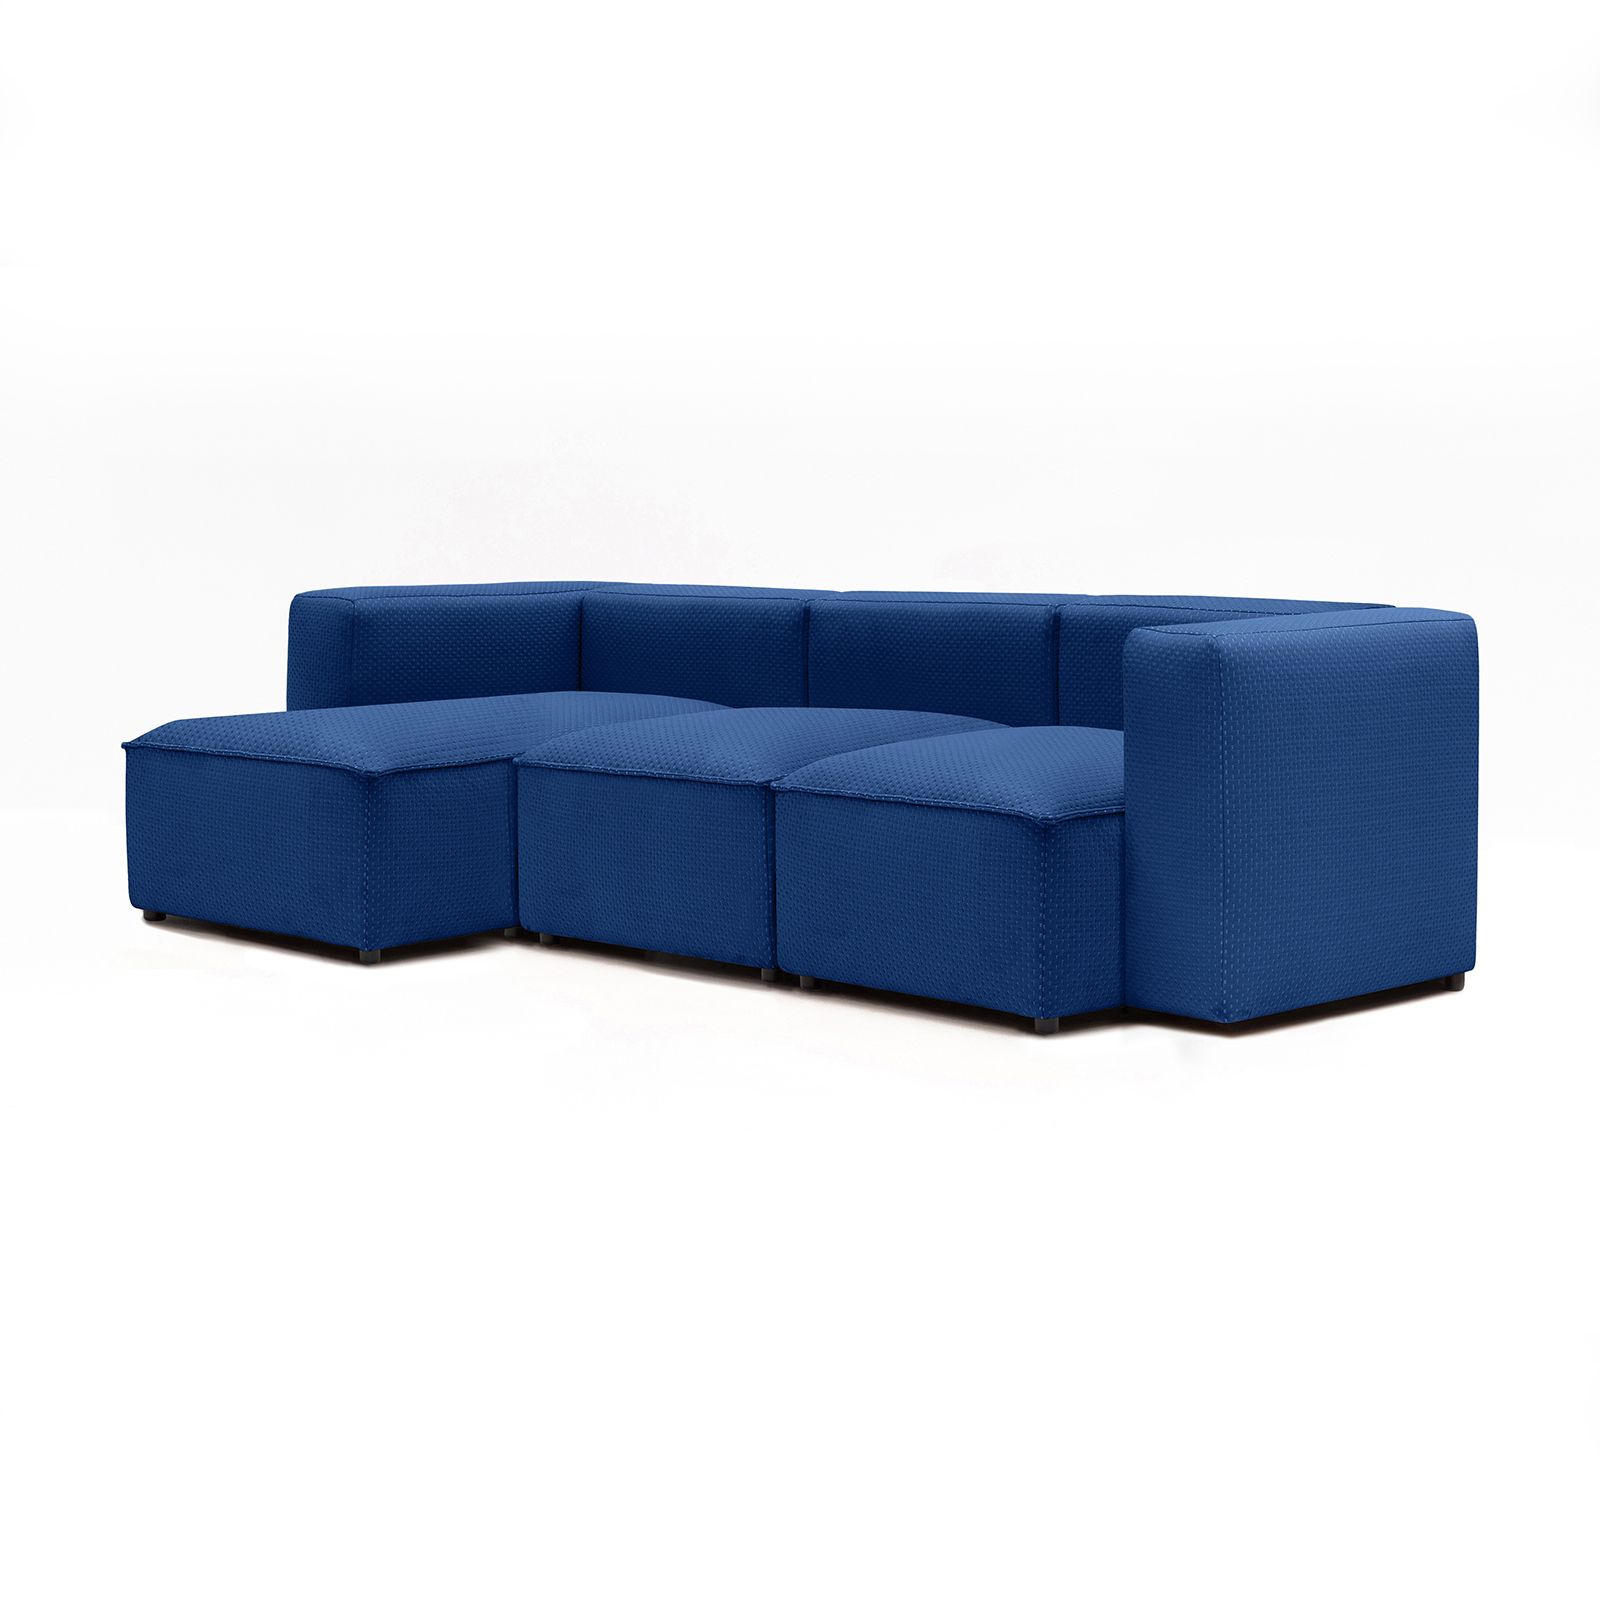 Permanent Future Easey Sofa 3 Seater Sectional Short Left Zoom Electric Pf Sf Ea X3s L Ze 45º View